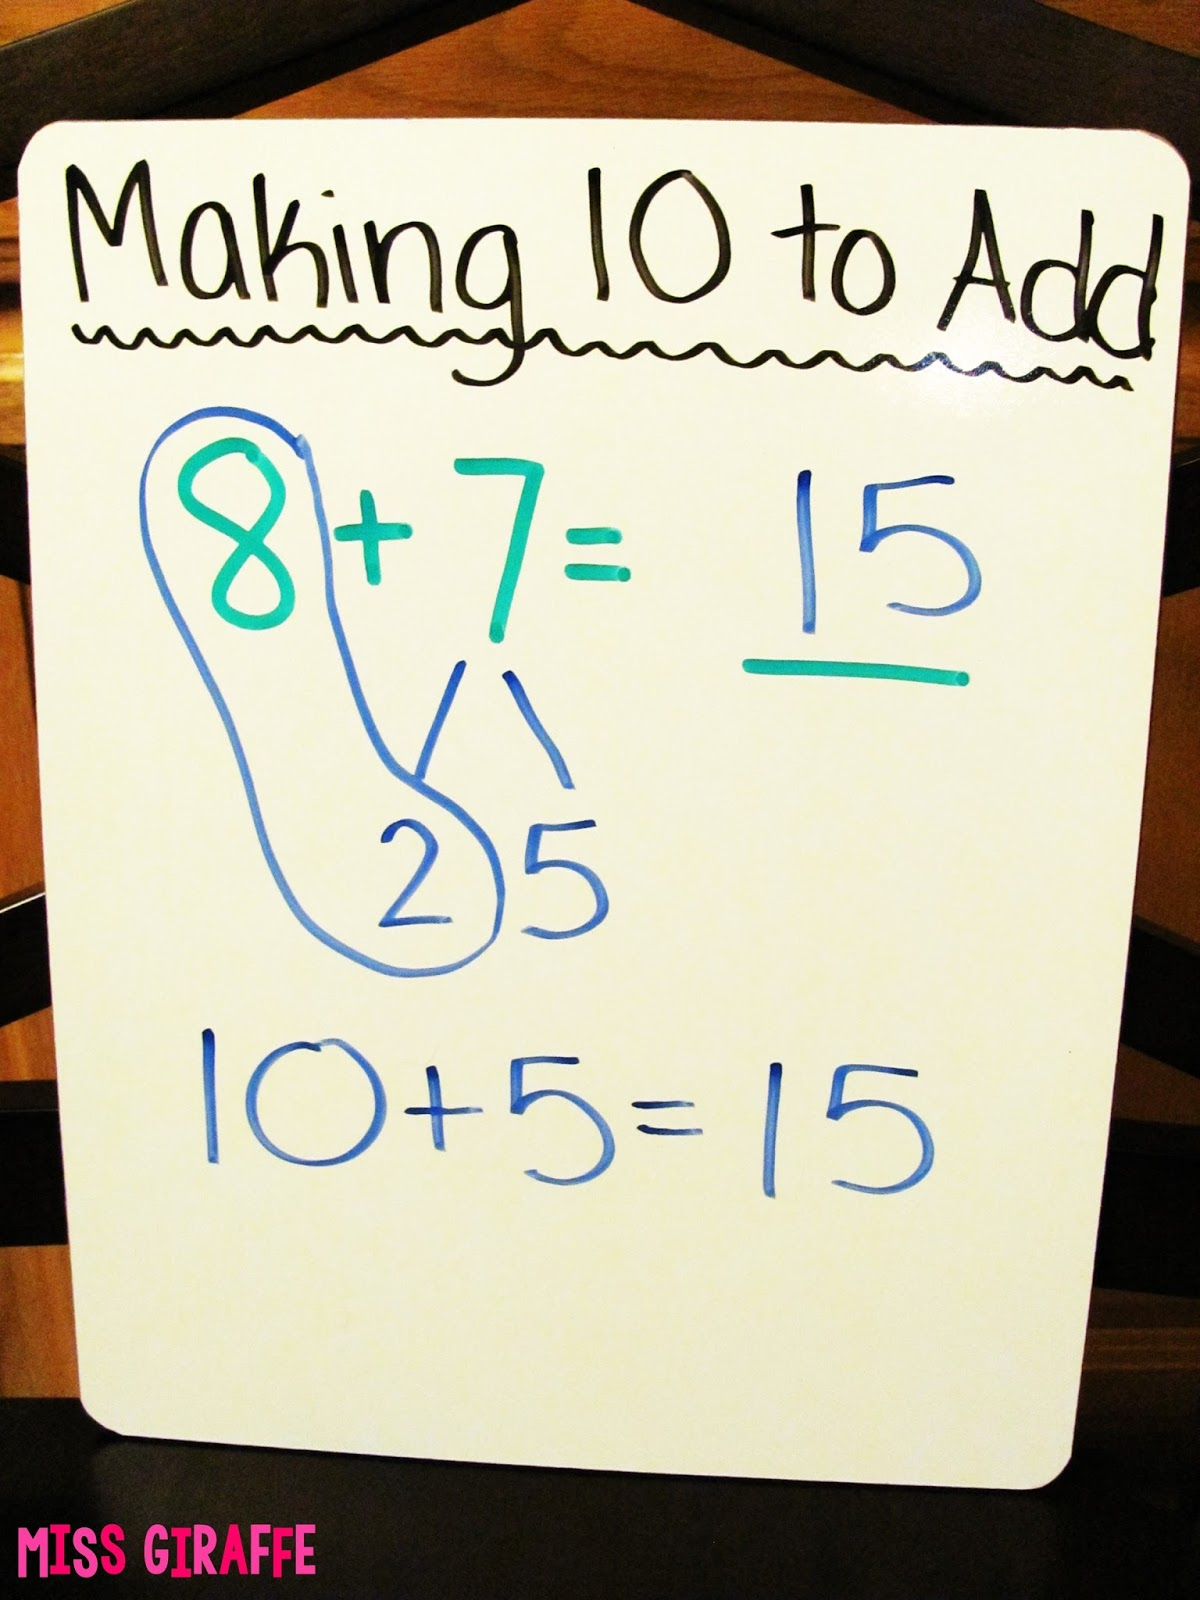 small resolution of Miss Giraffe's Class: Making a 10 to Add